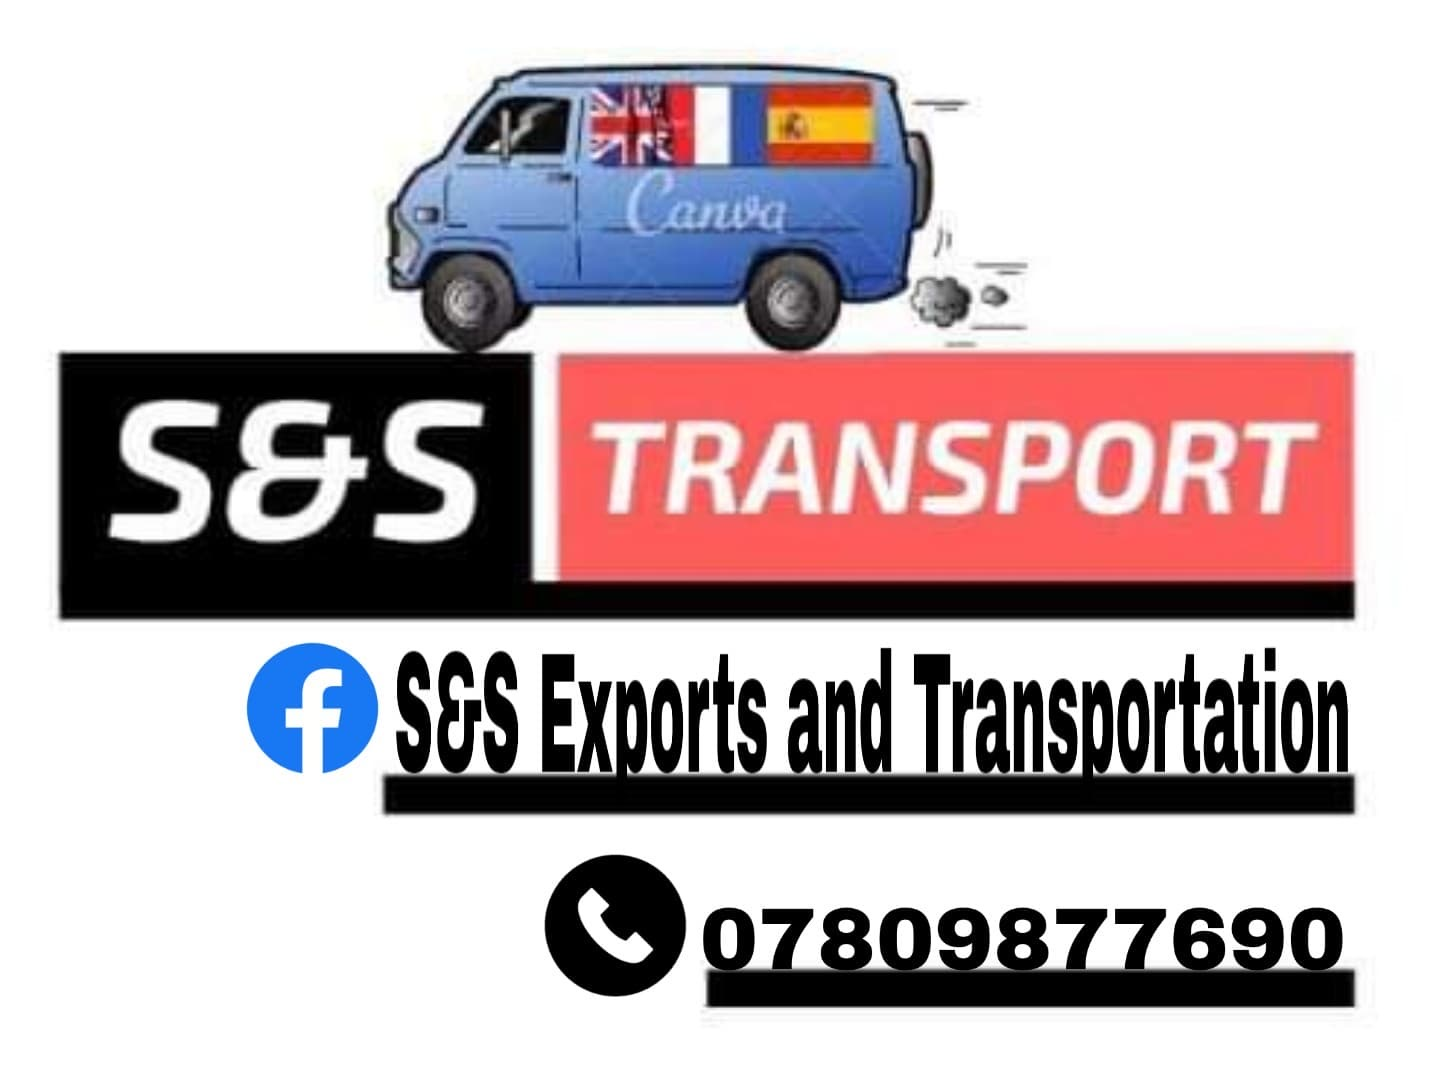 Transportation to Uk and to Spain